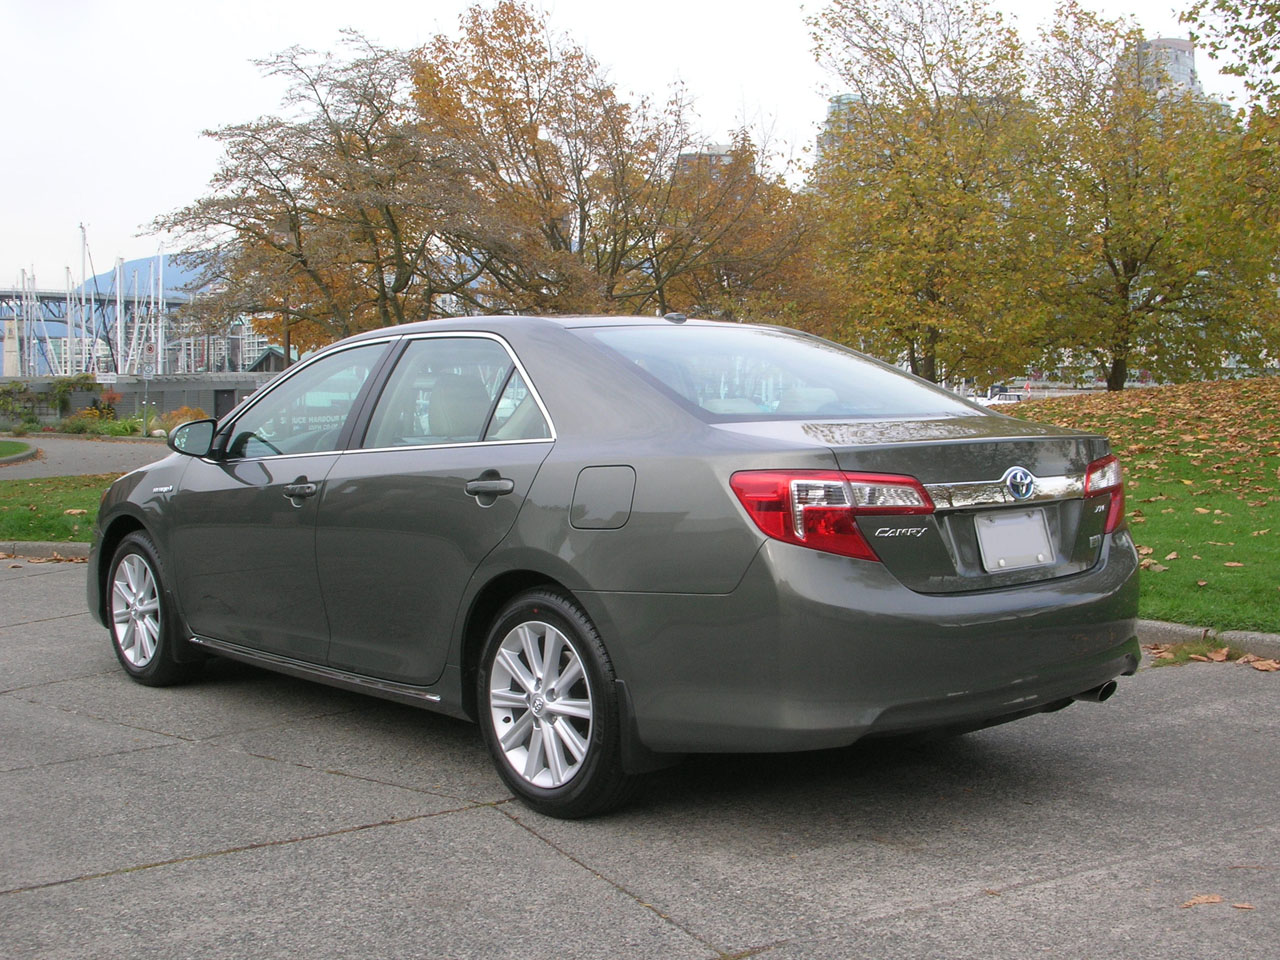 North Point Toyota >> 2014 Toyota Camry Hybrid XLE Road Test Review | CarCostCanada